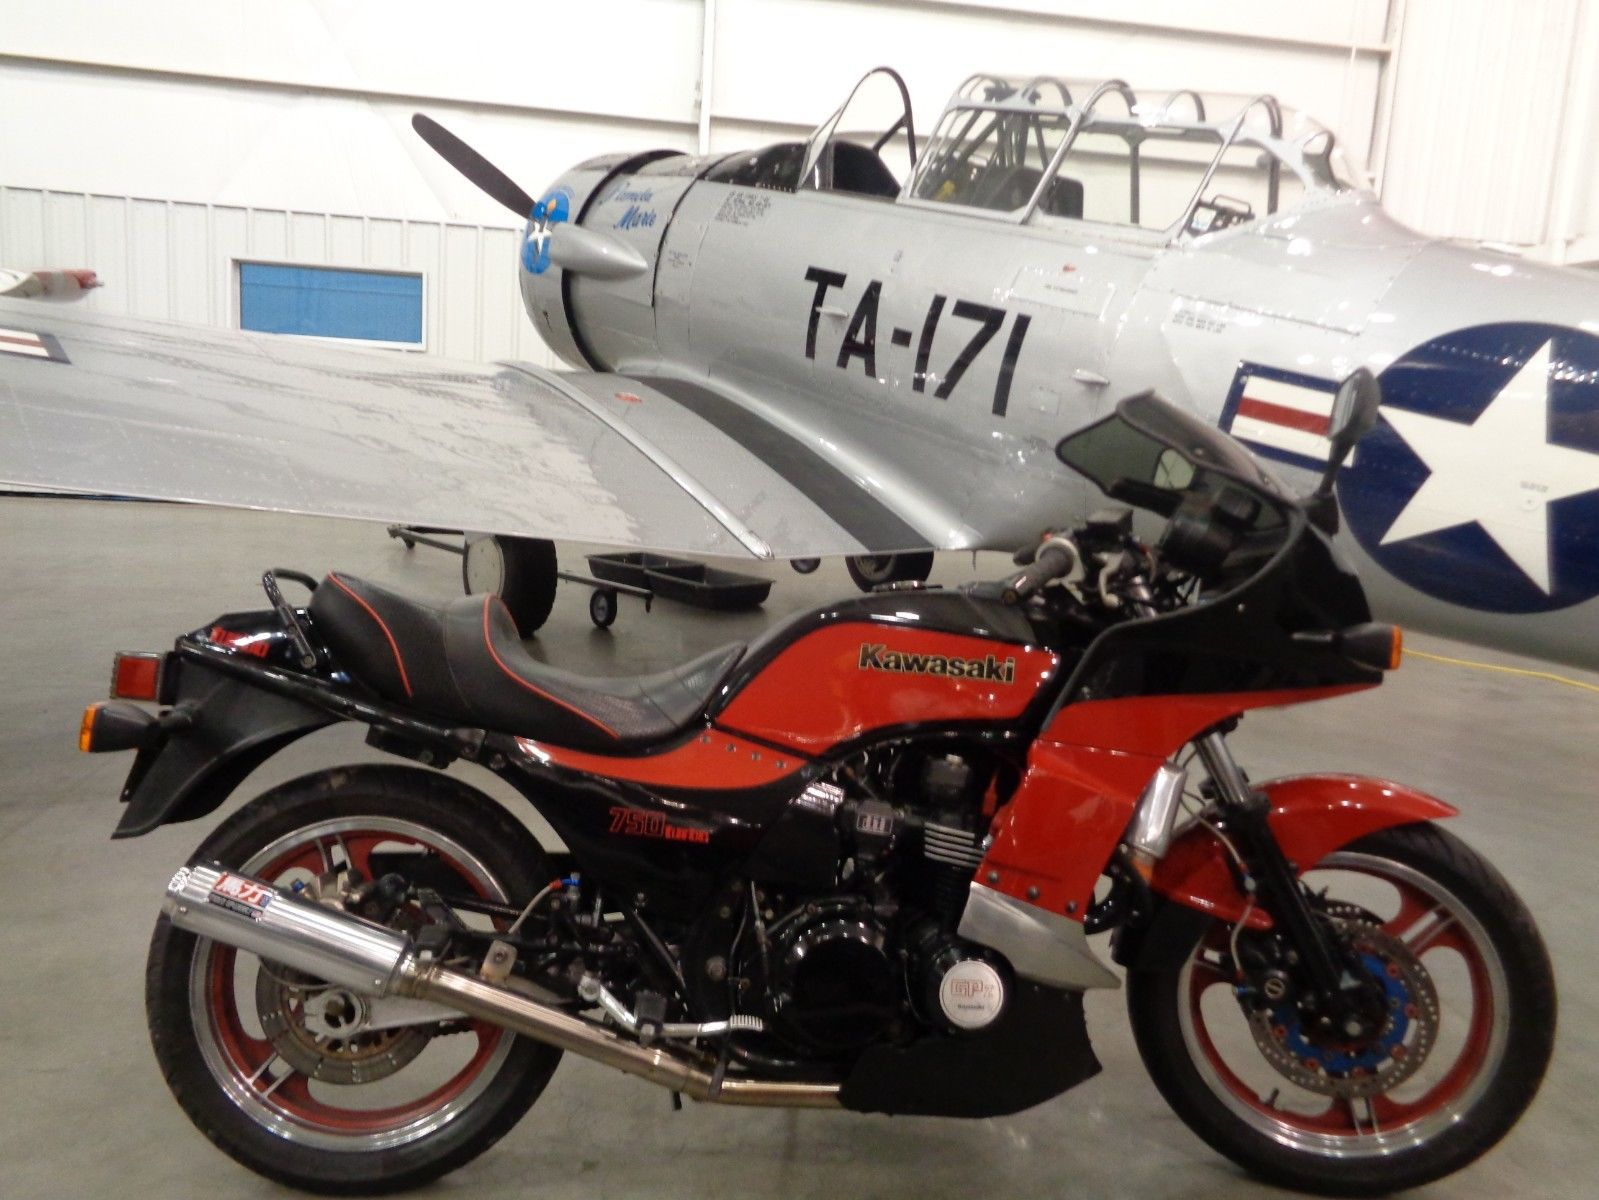 Customized 1984 Kawasaki GPz750 Turbo Makes 180 Horsepower